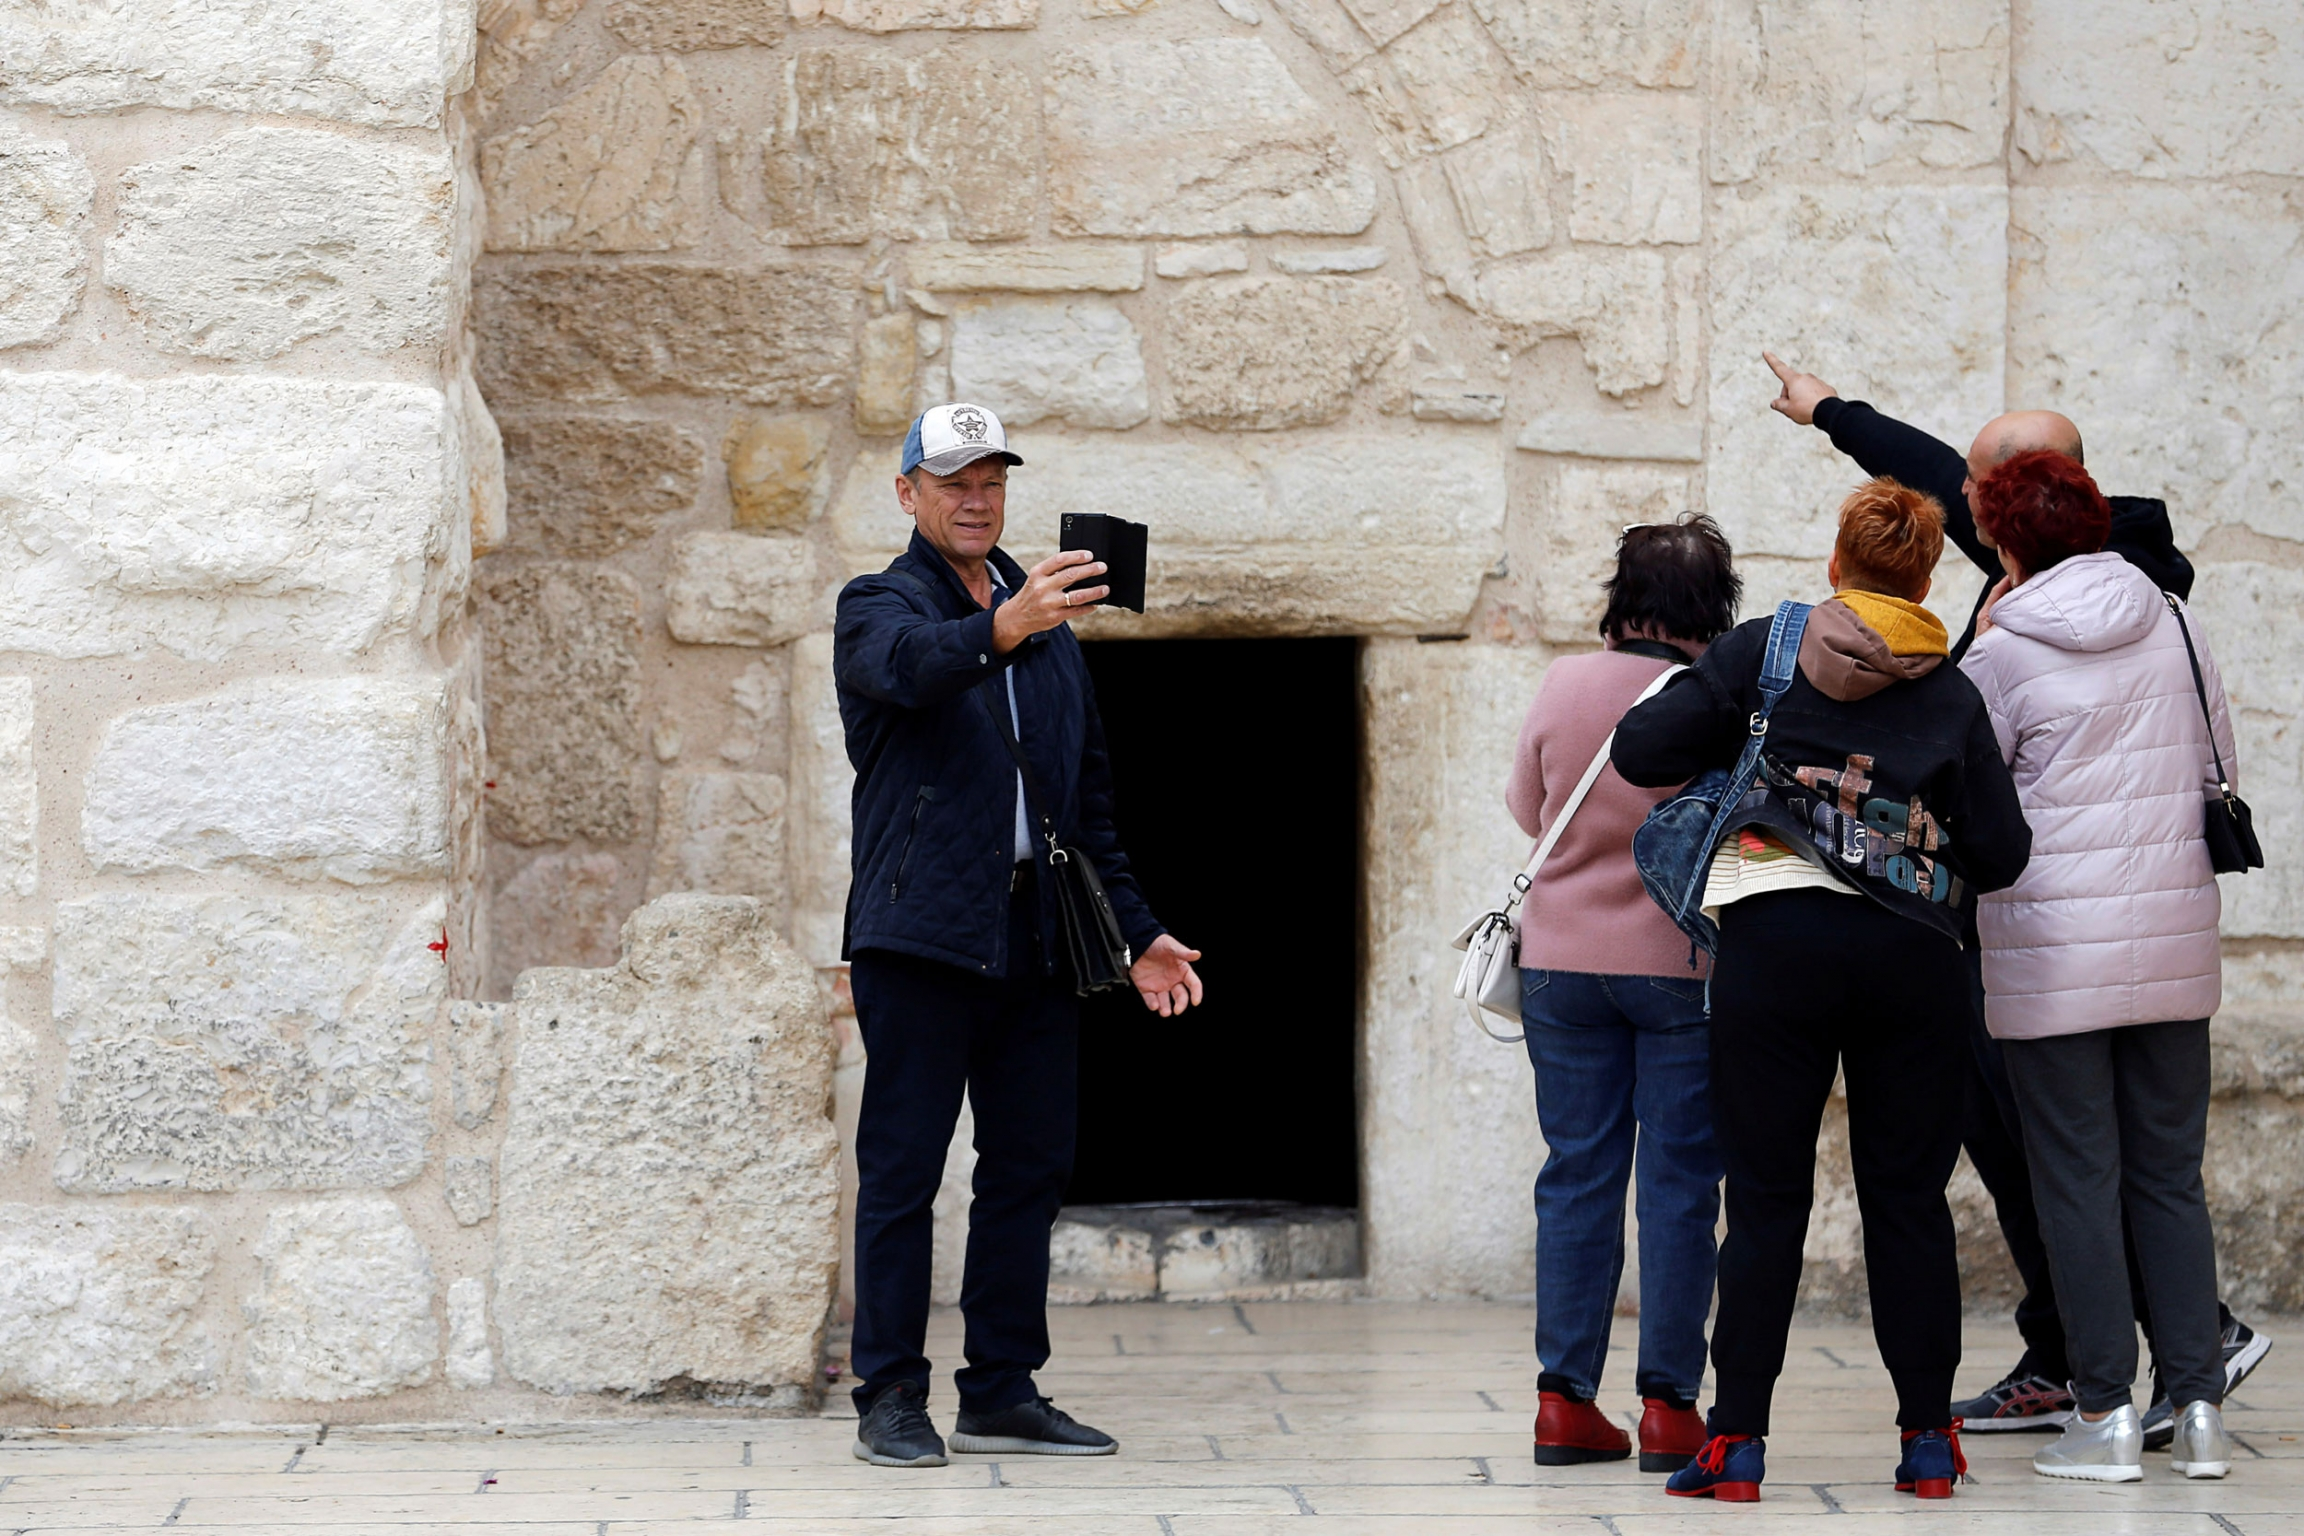 A tourist wearing a ball cap is shown with four other tourists taking a selfie outside the Church of the Nativity.